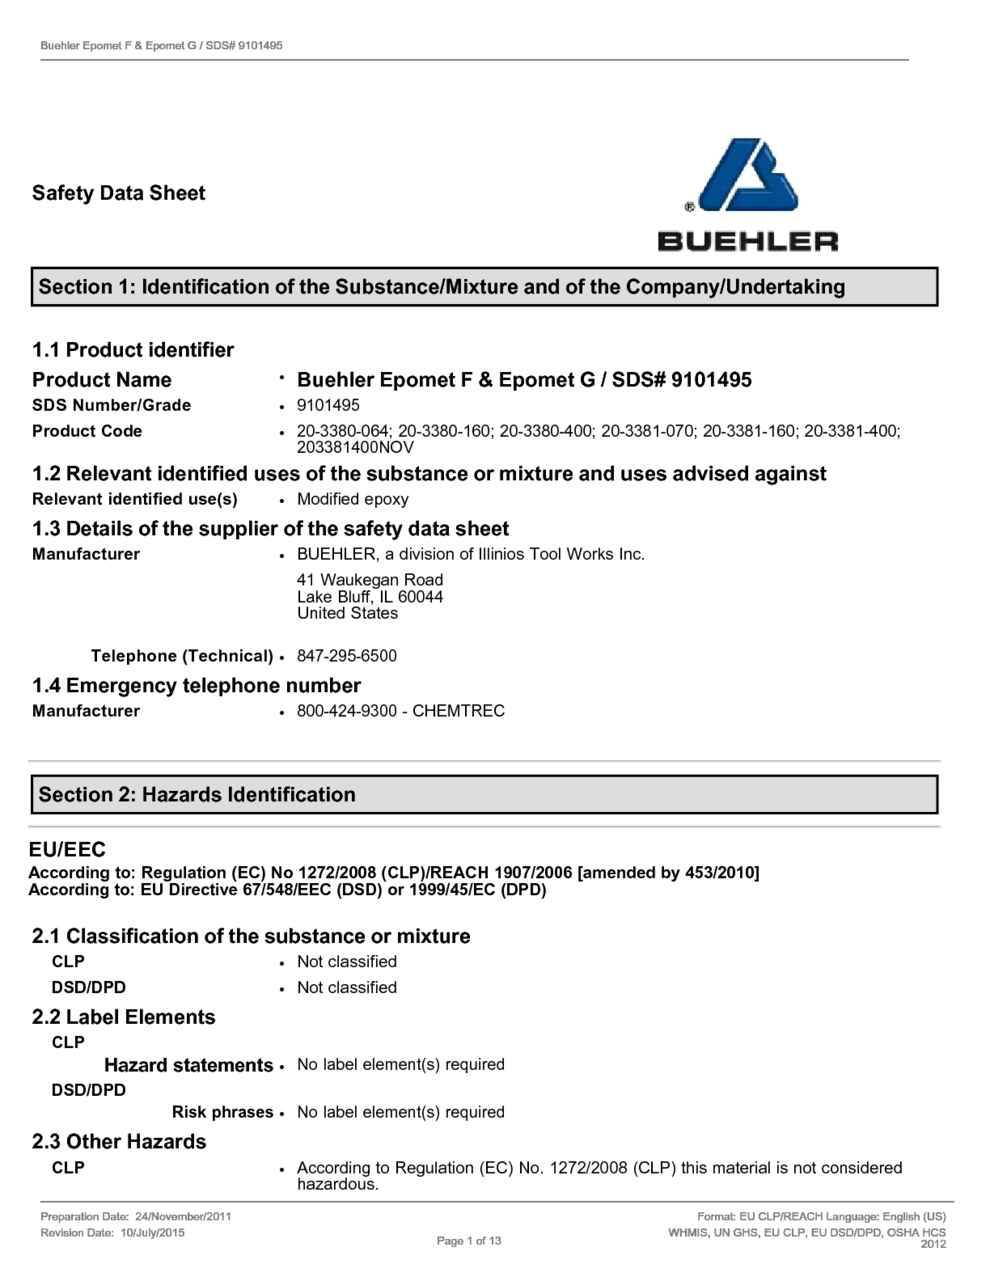 Material Safety Data Sheet Template Australia